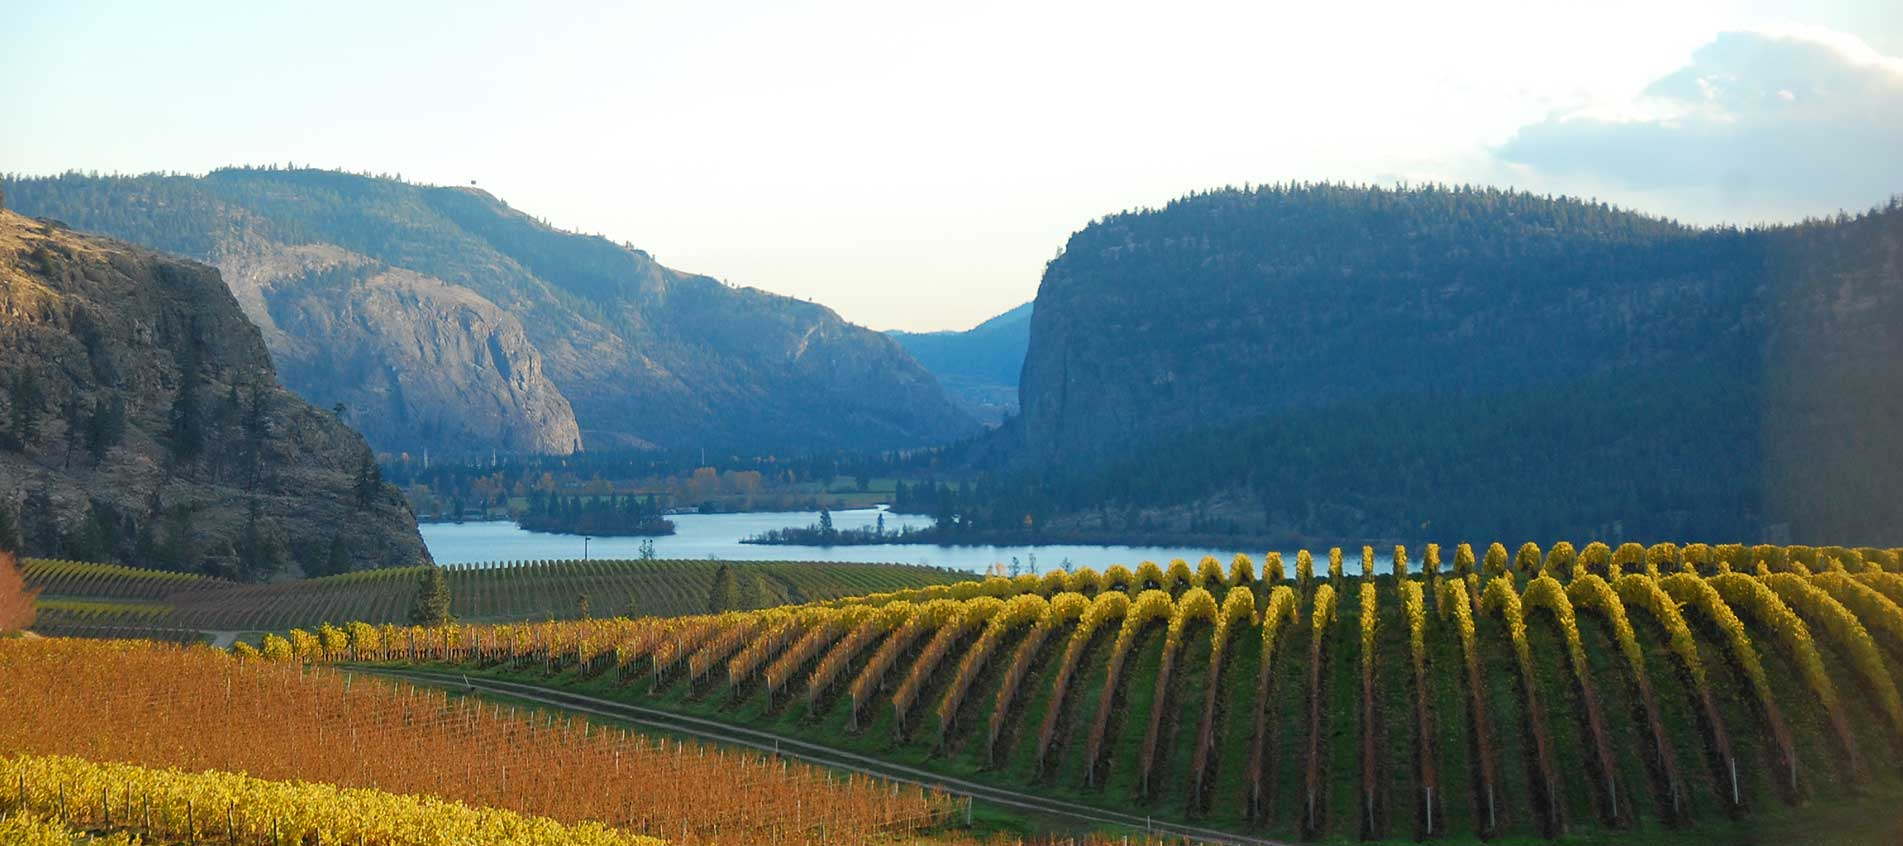 Blue Mountain welcomes you to experience wines using exclusively estate-grown grapes from its South Okanagan vineyard.